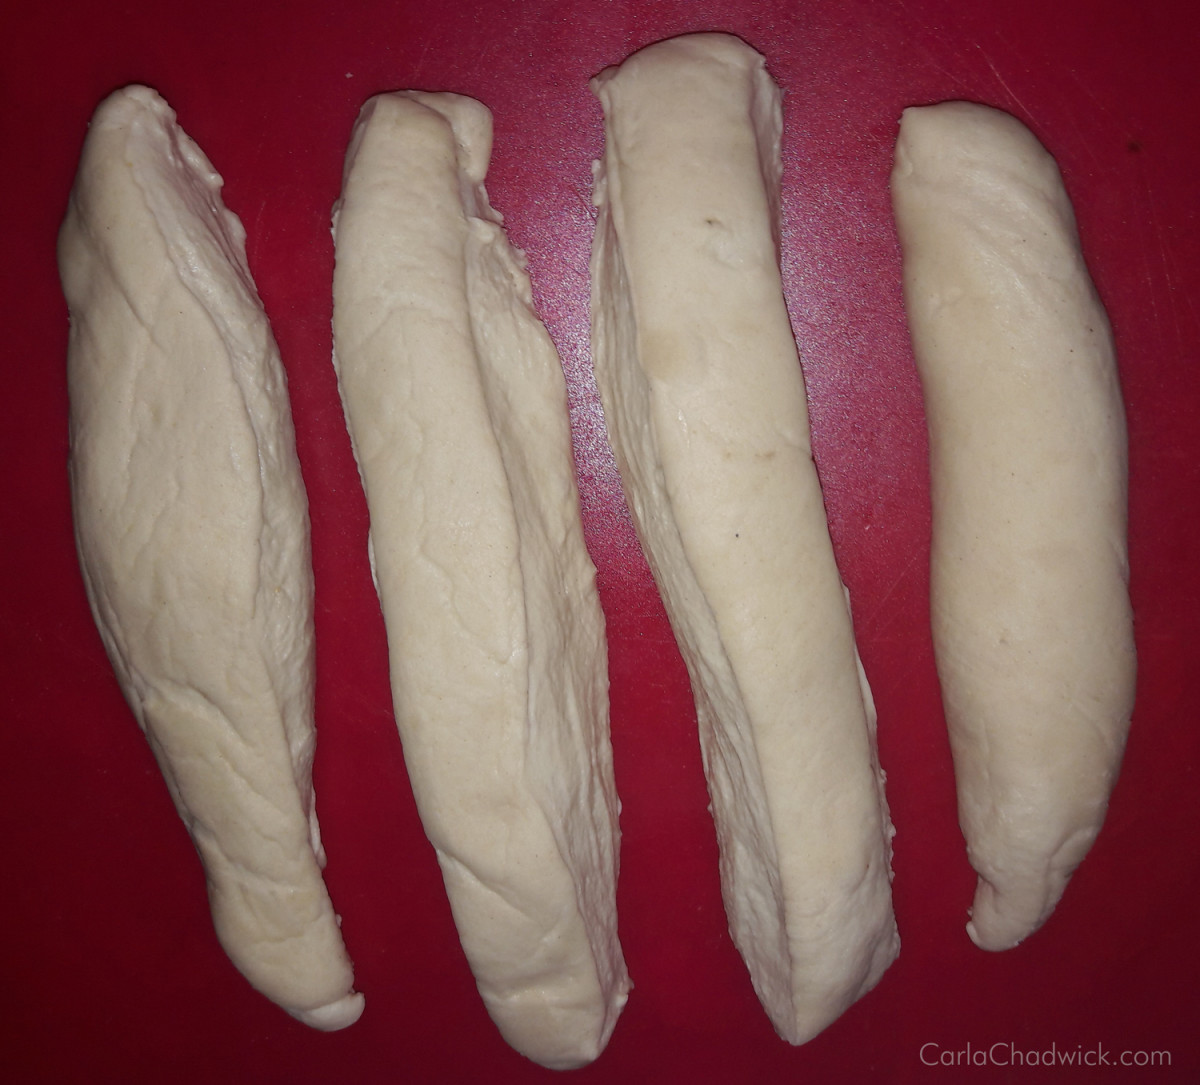 Packaged fresh pizza dough divided into four strips